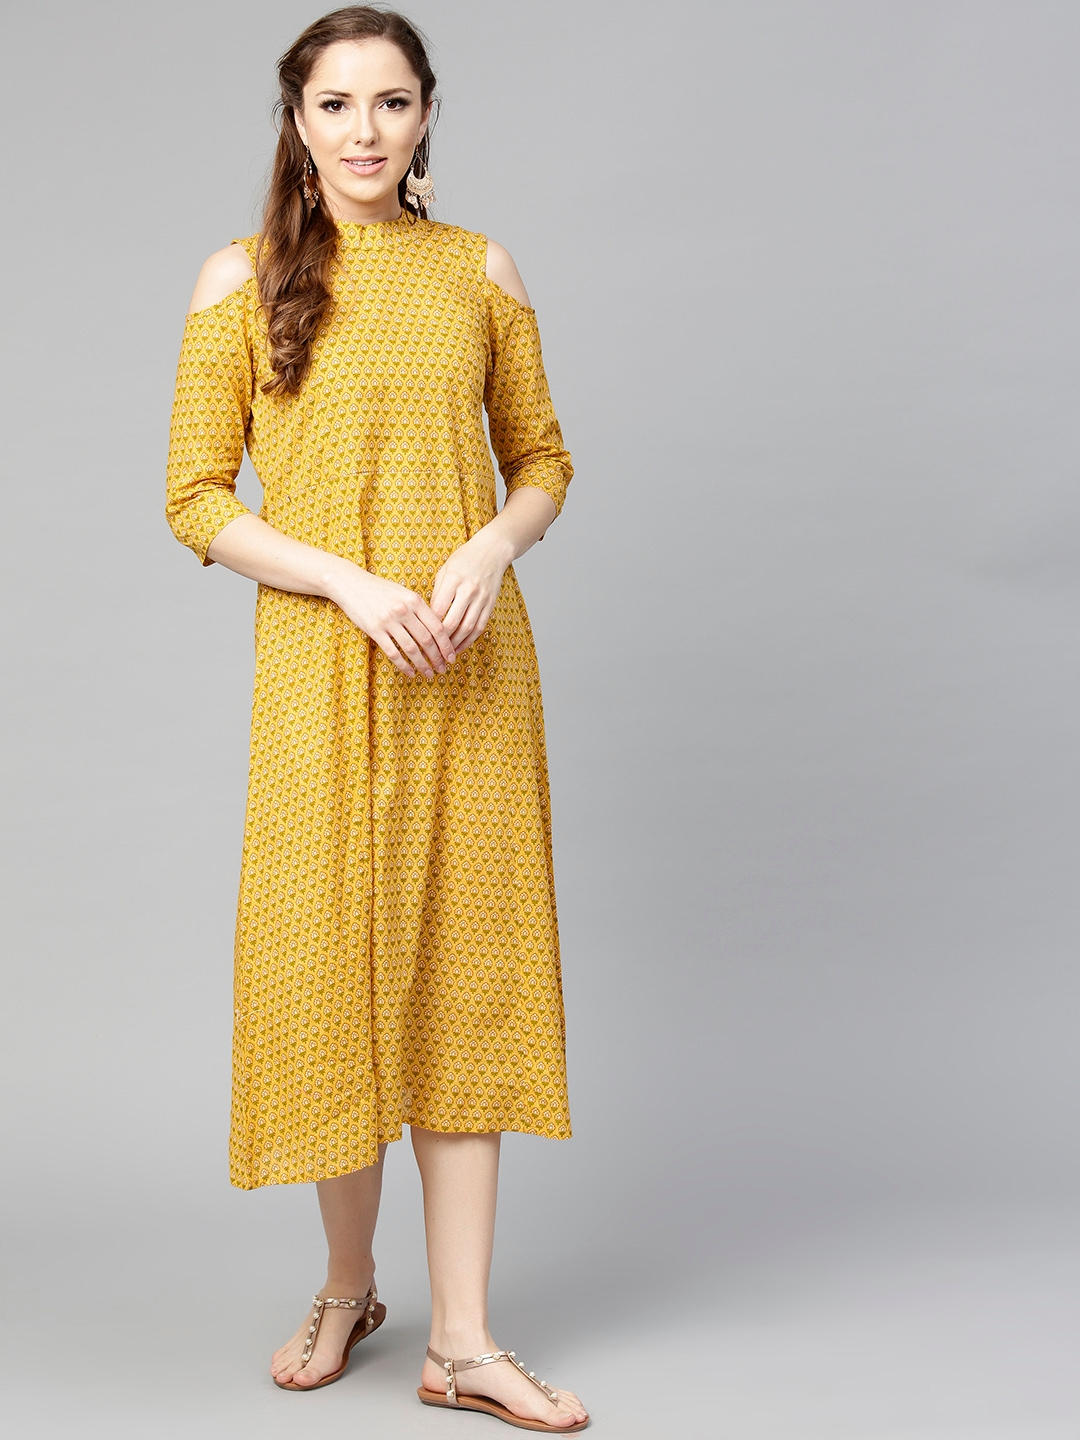 fea5a20456 Buy Aasi Women Mustard Yellow Printed A Line Dress - Dresses for ...